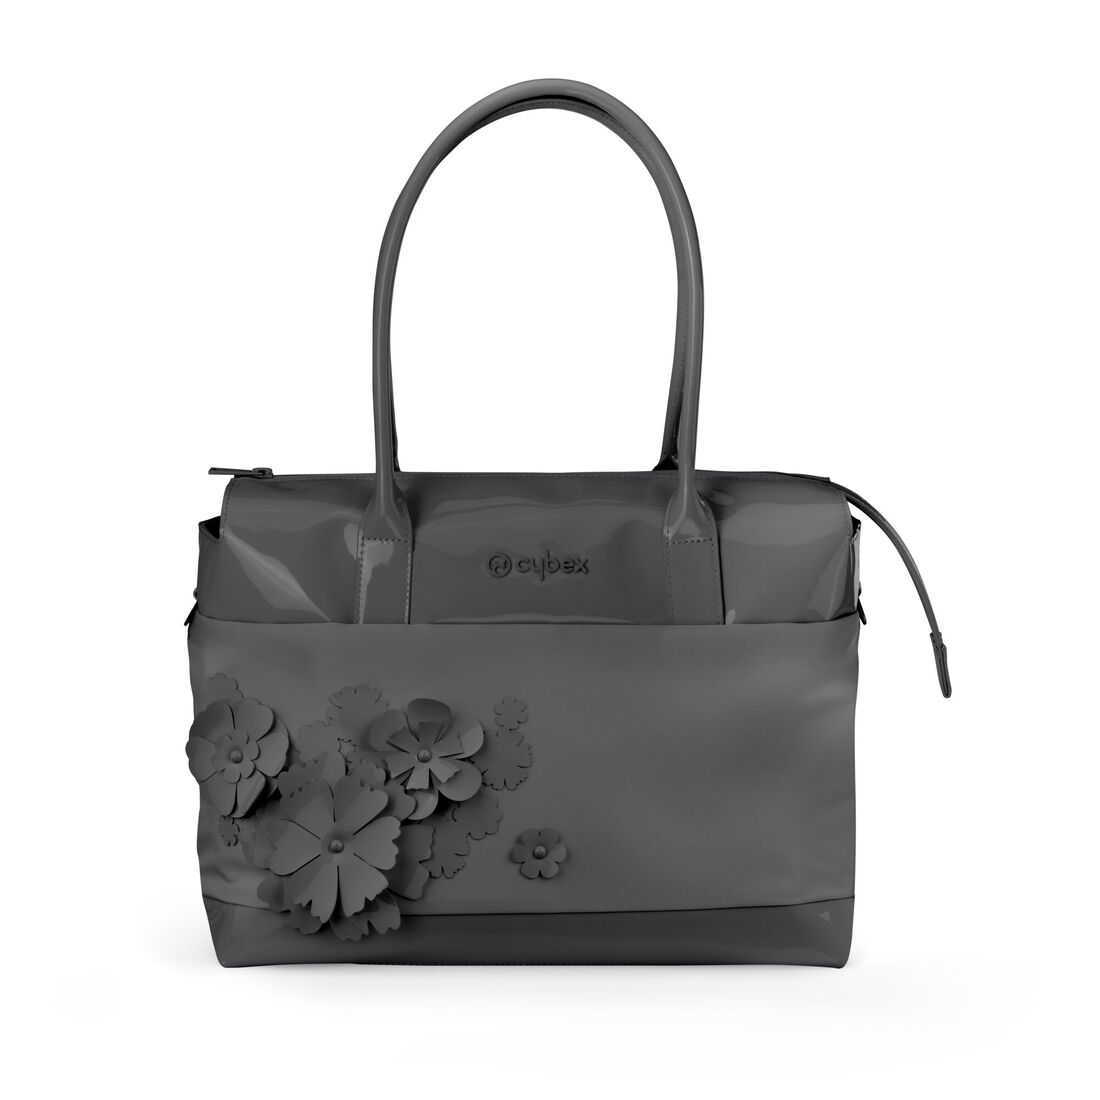 CYBEX Changing Bag Simply Flowers - Dream Grey in Dream Grey large image number 1